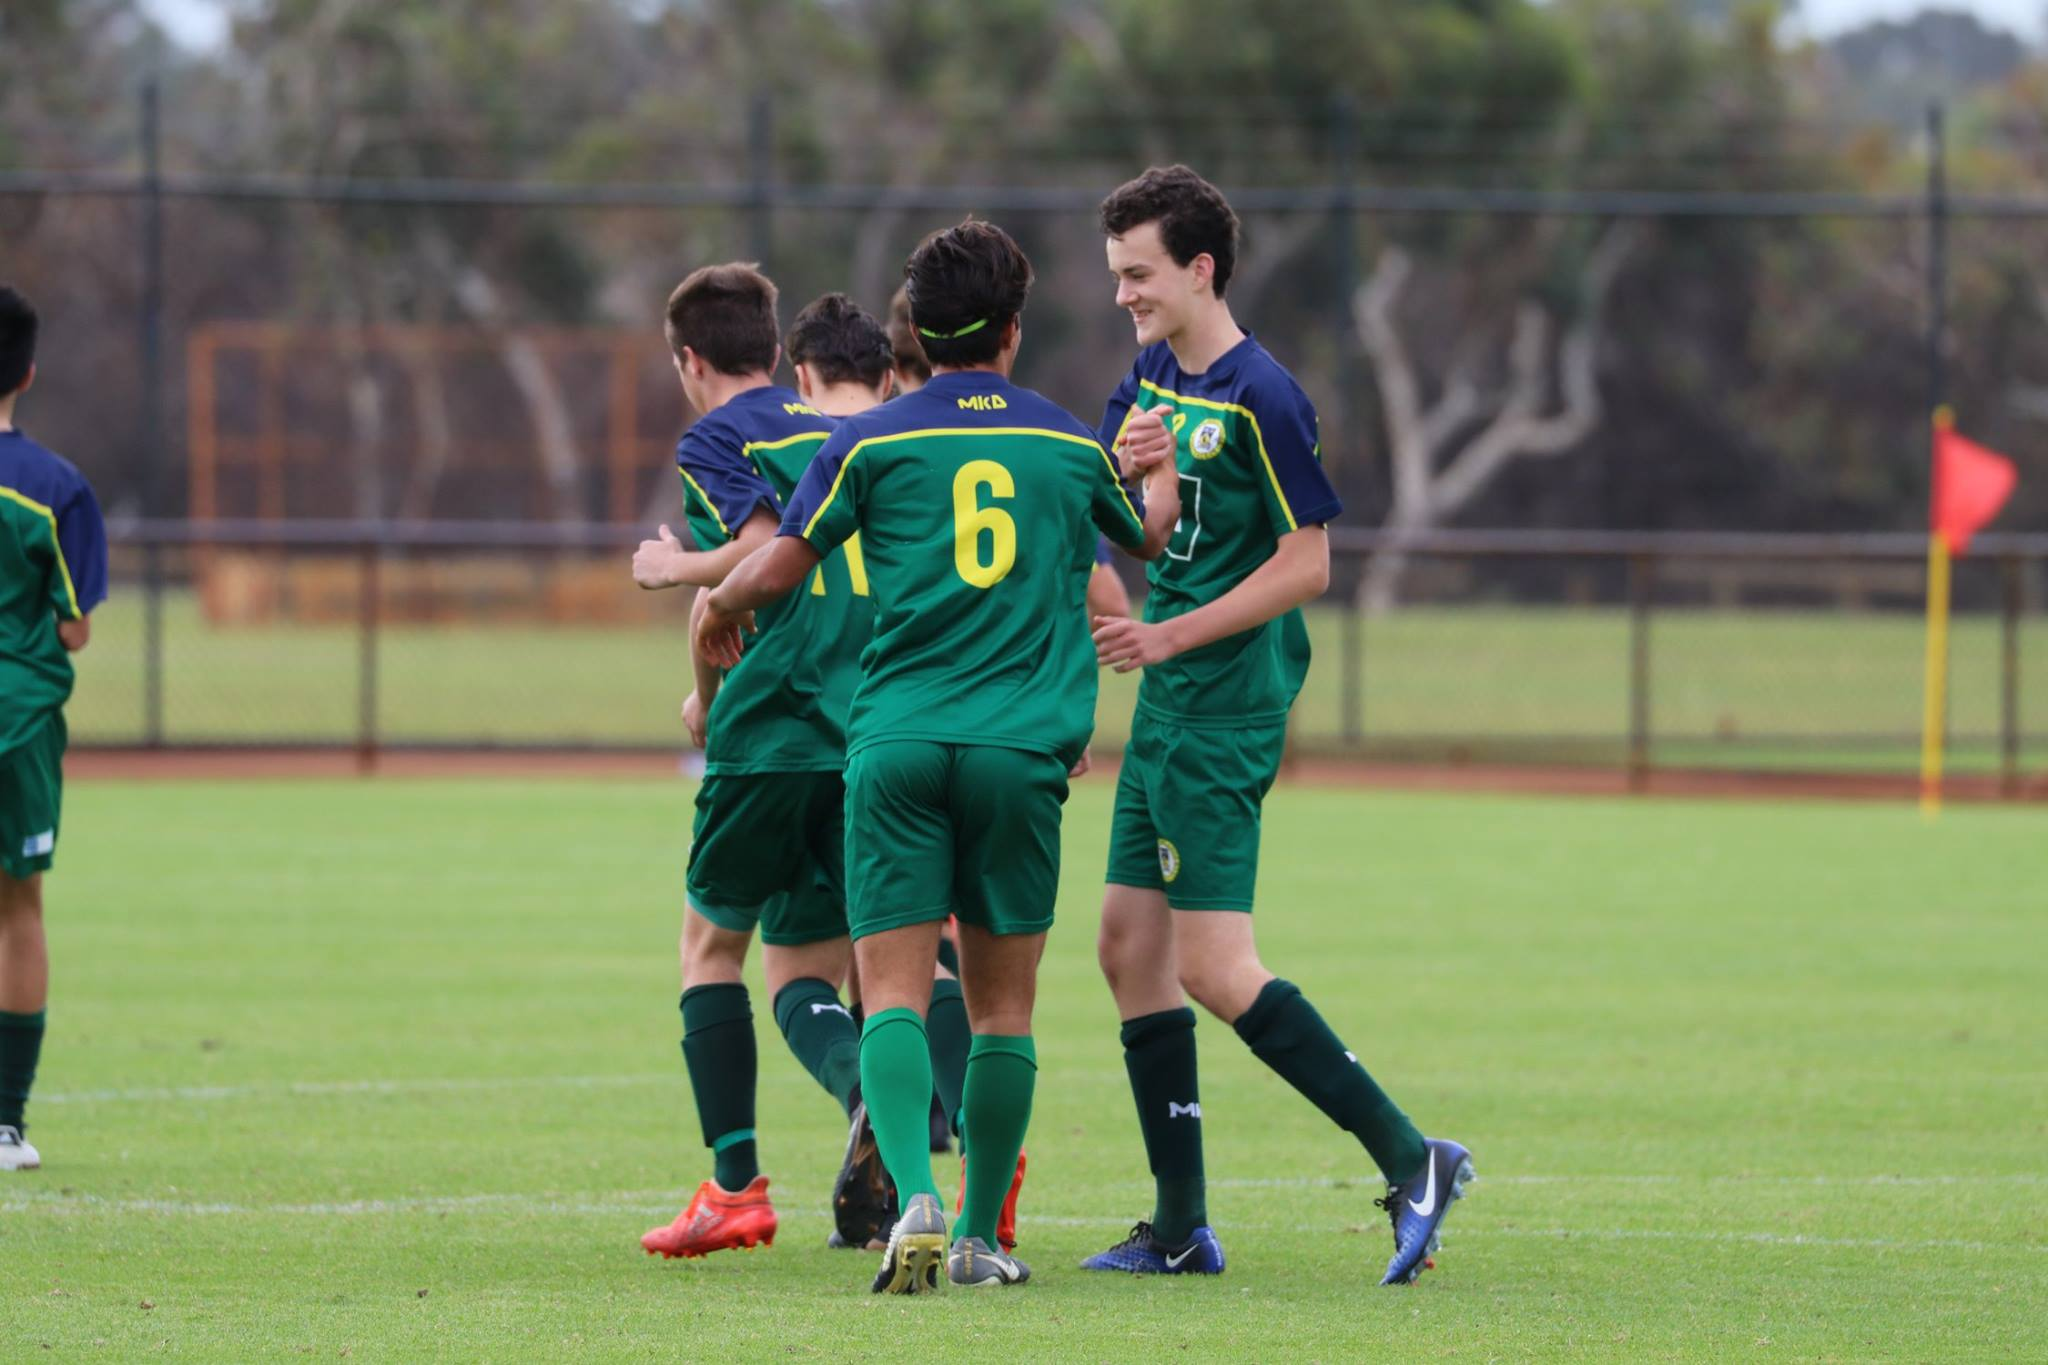 The U18's secured another three points in a 3-1 win - Credit: Gabriele Maluga